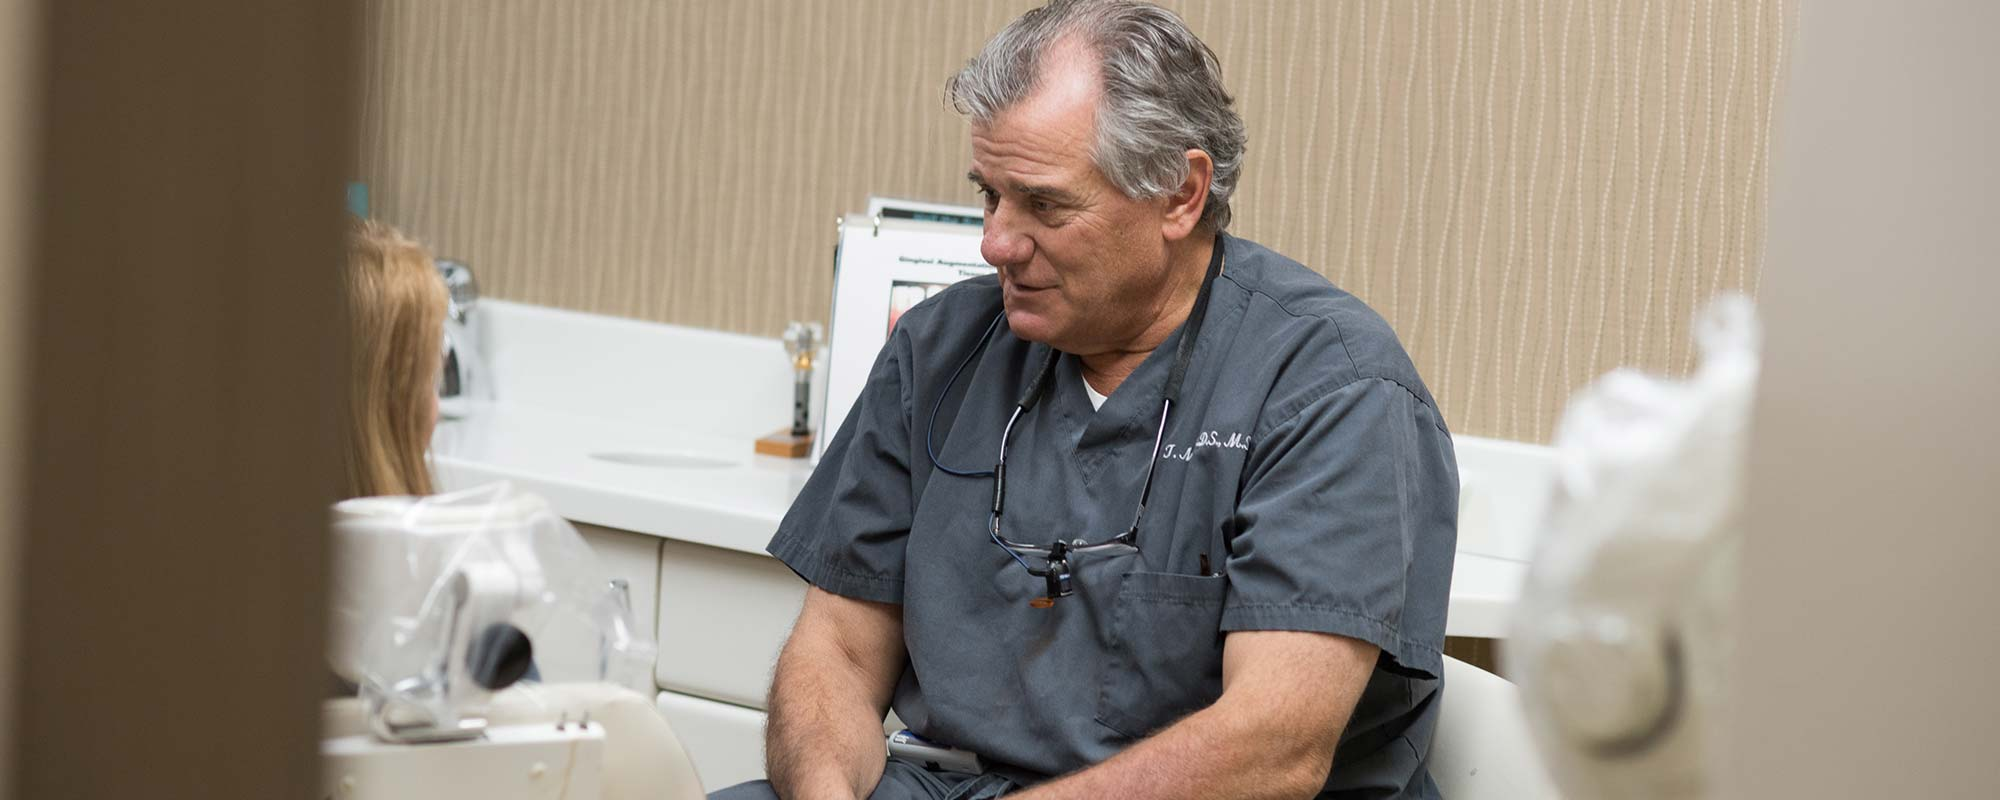 Learn about the periodontics services offered at Park Dental Specialists